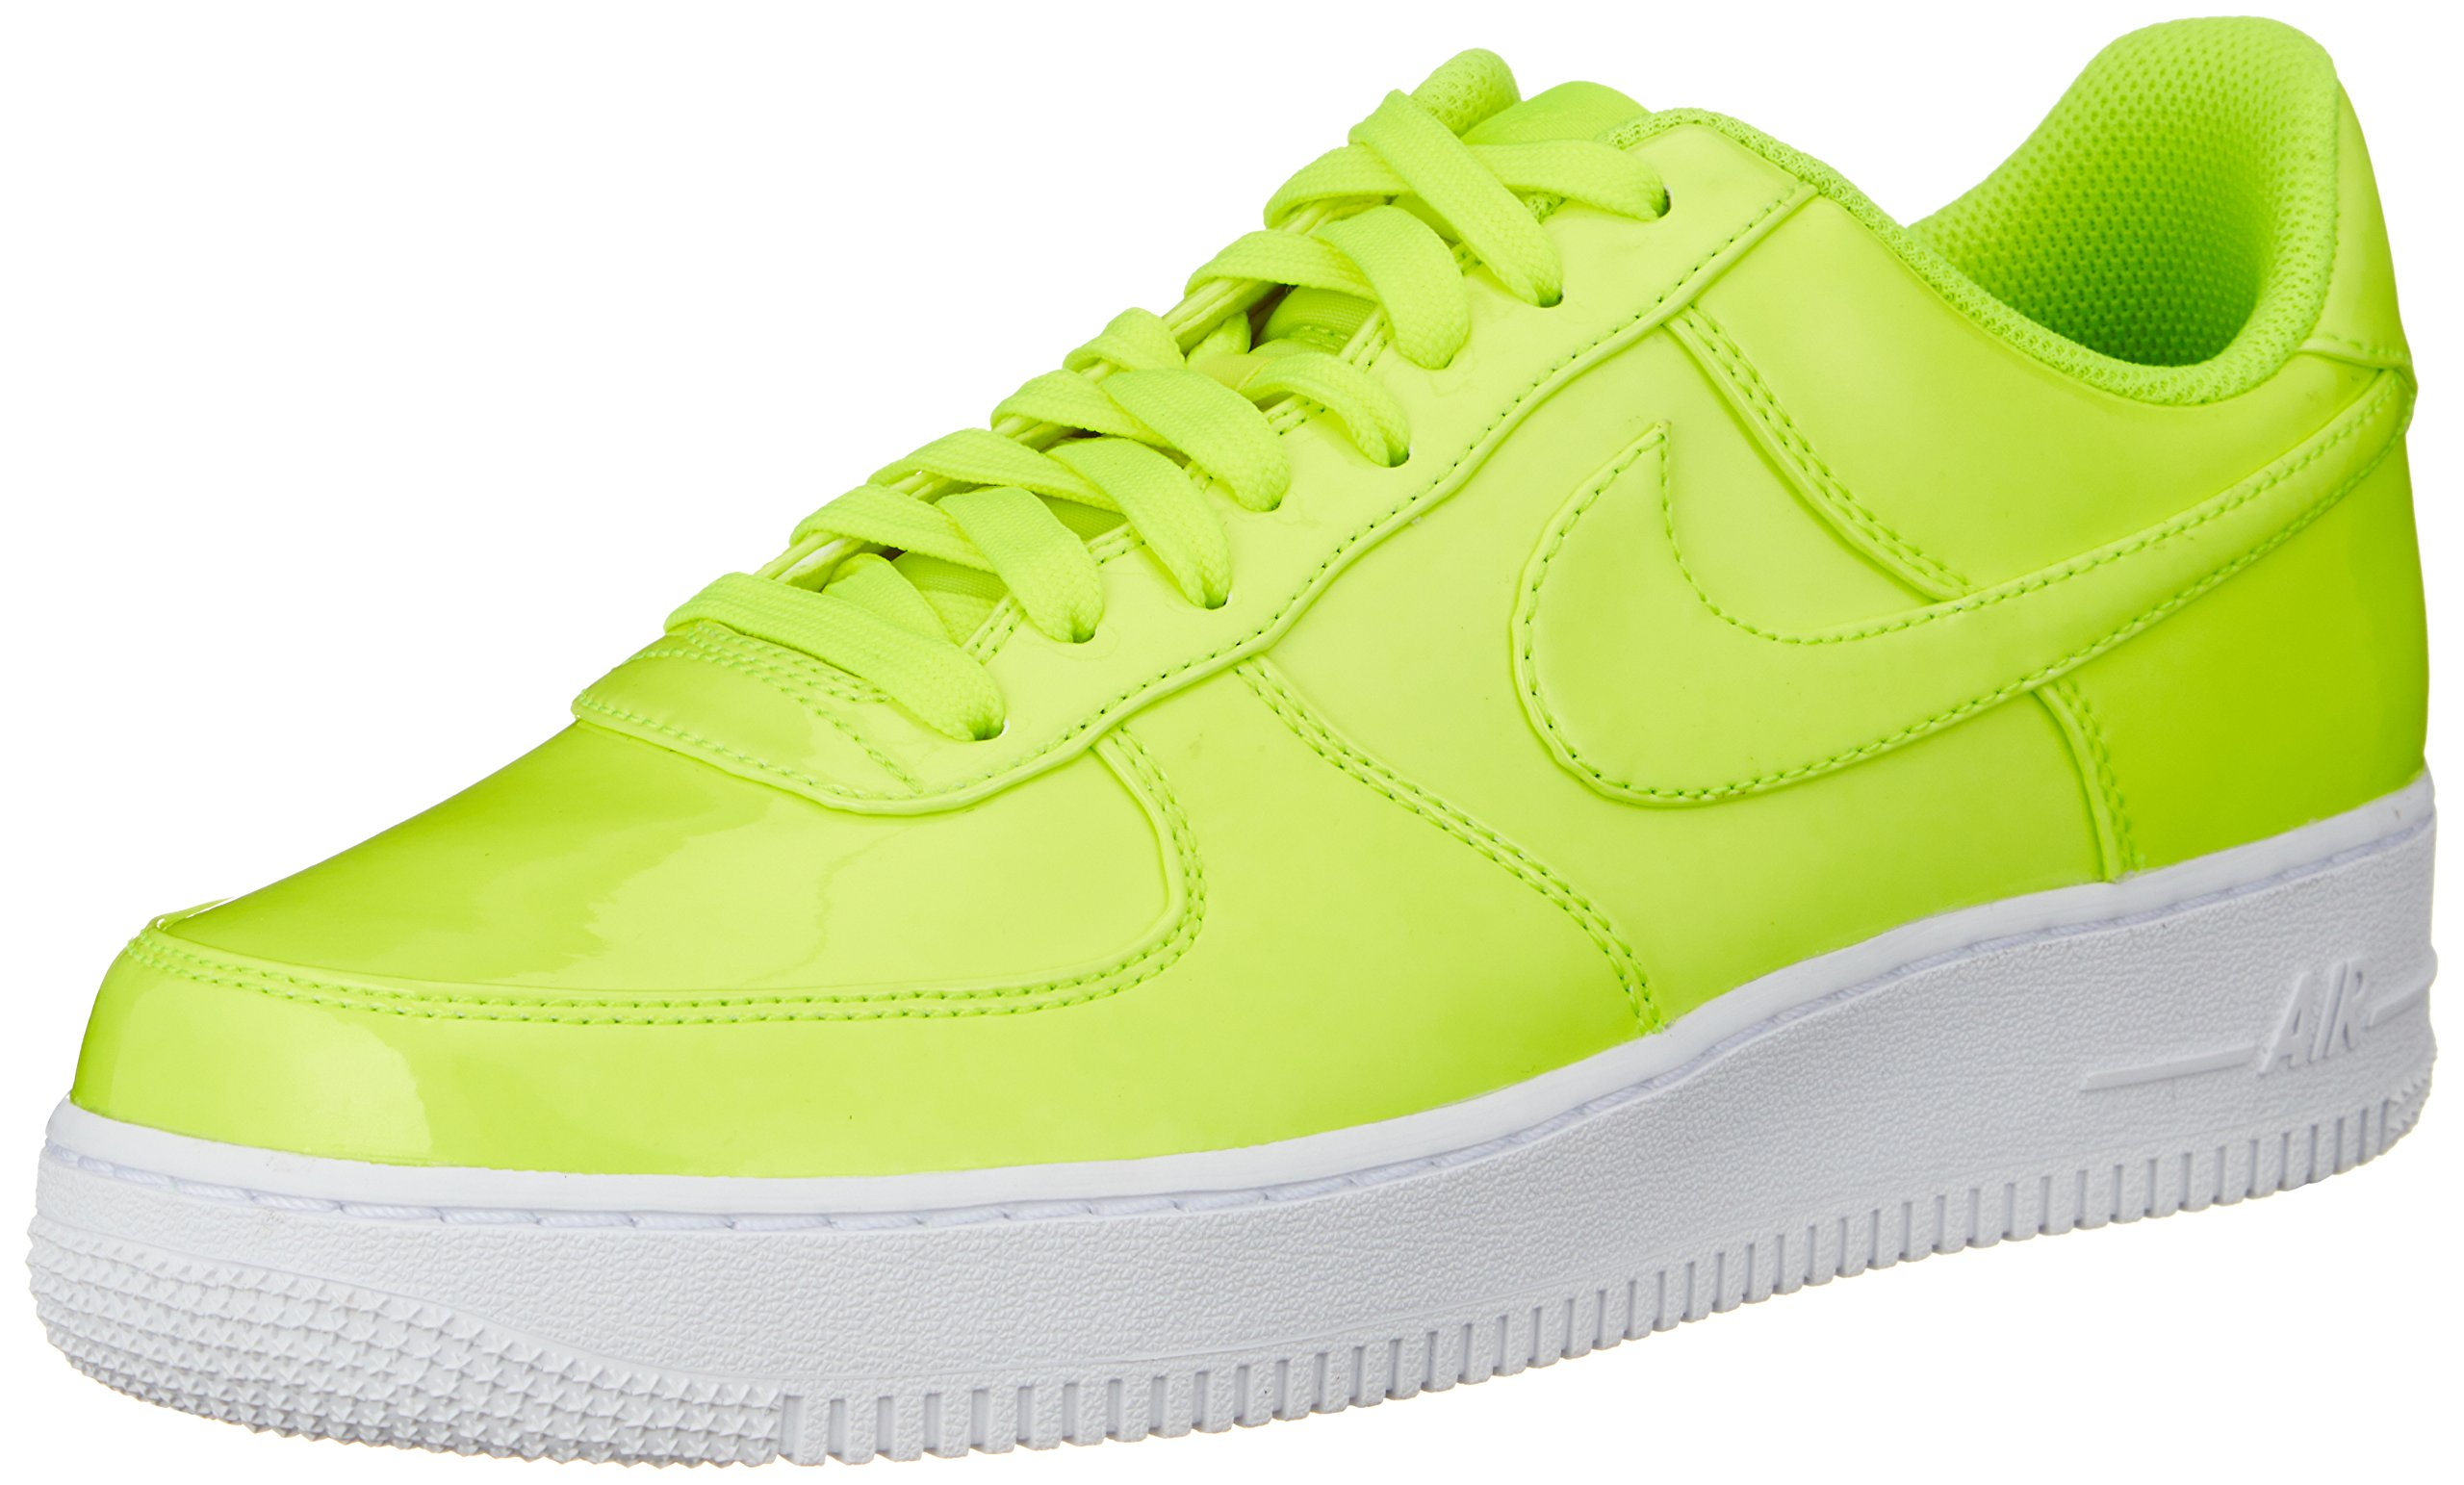 low priced 364c5 5aaa6 Galleon - Nike Men s Air Force 1  07 LV8 UV Basketball Shoe (11)